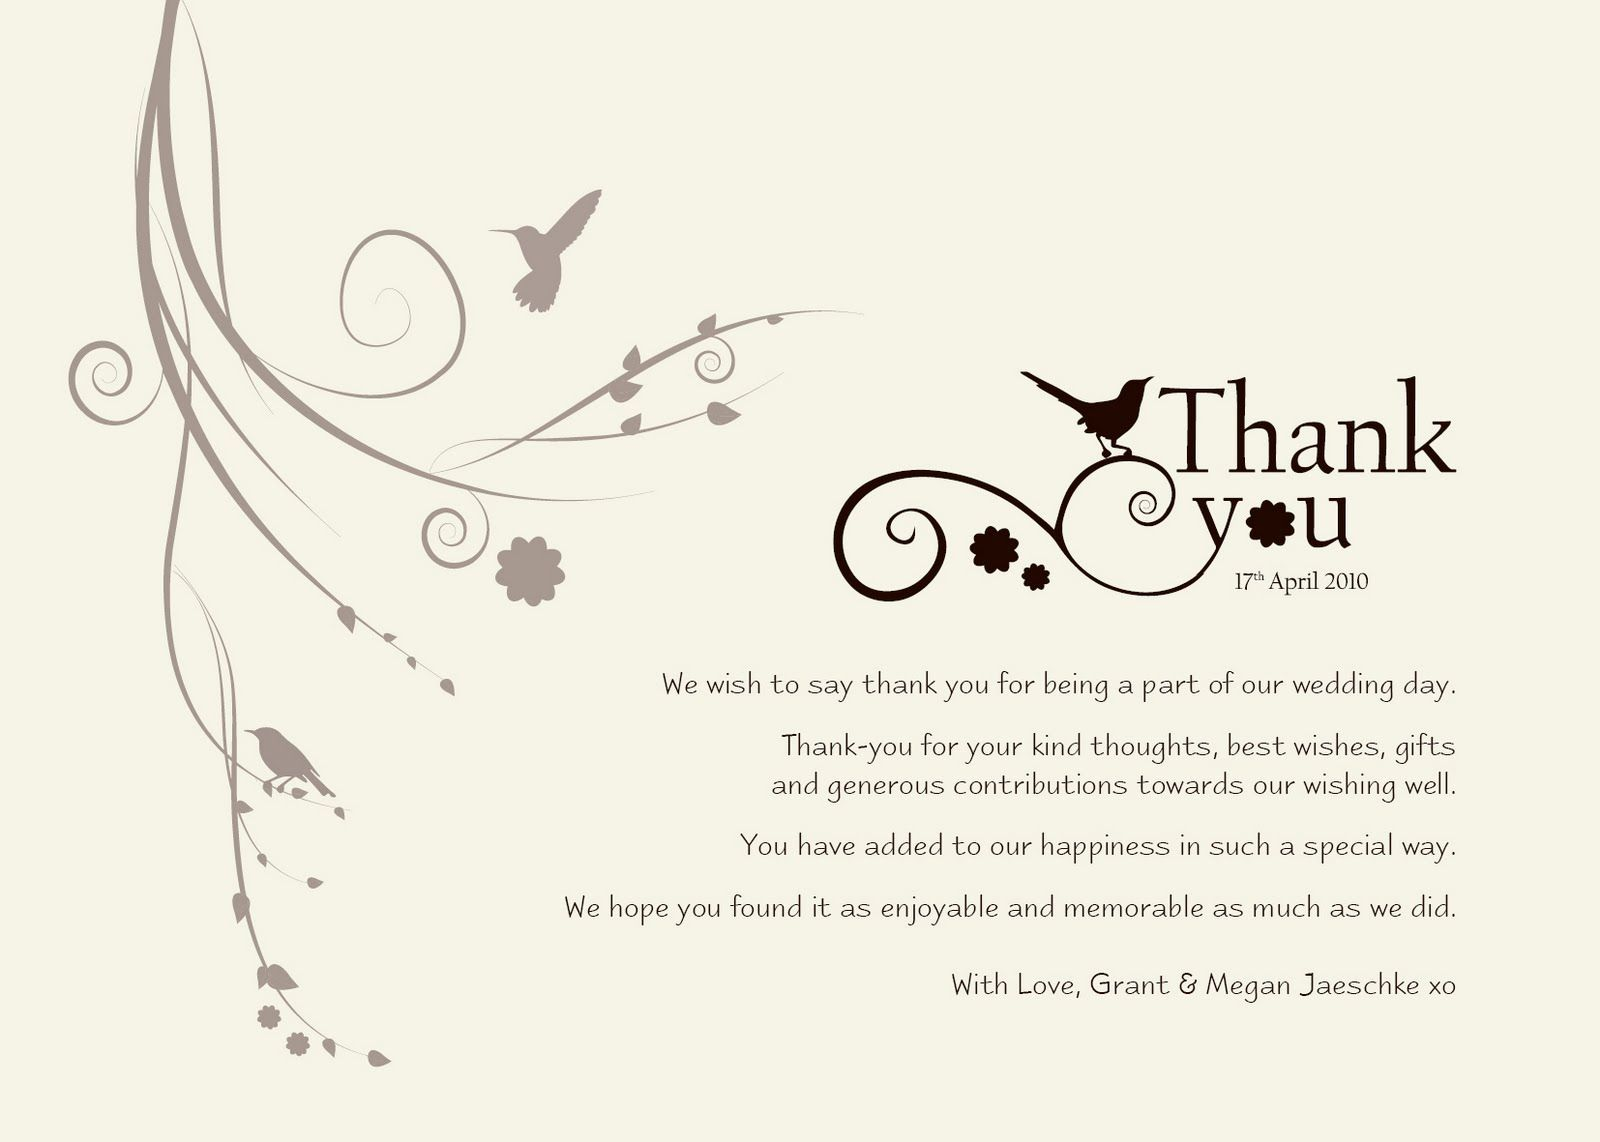 Wedding Thank You Templates Free – What to Write in Wedding Thank You Cards Sample